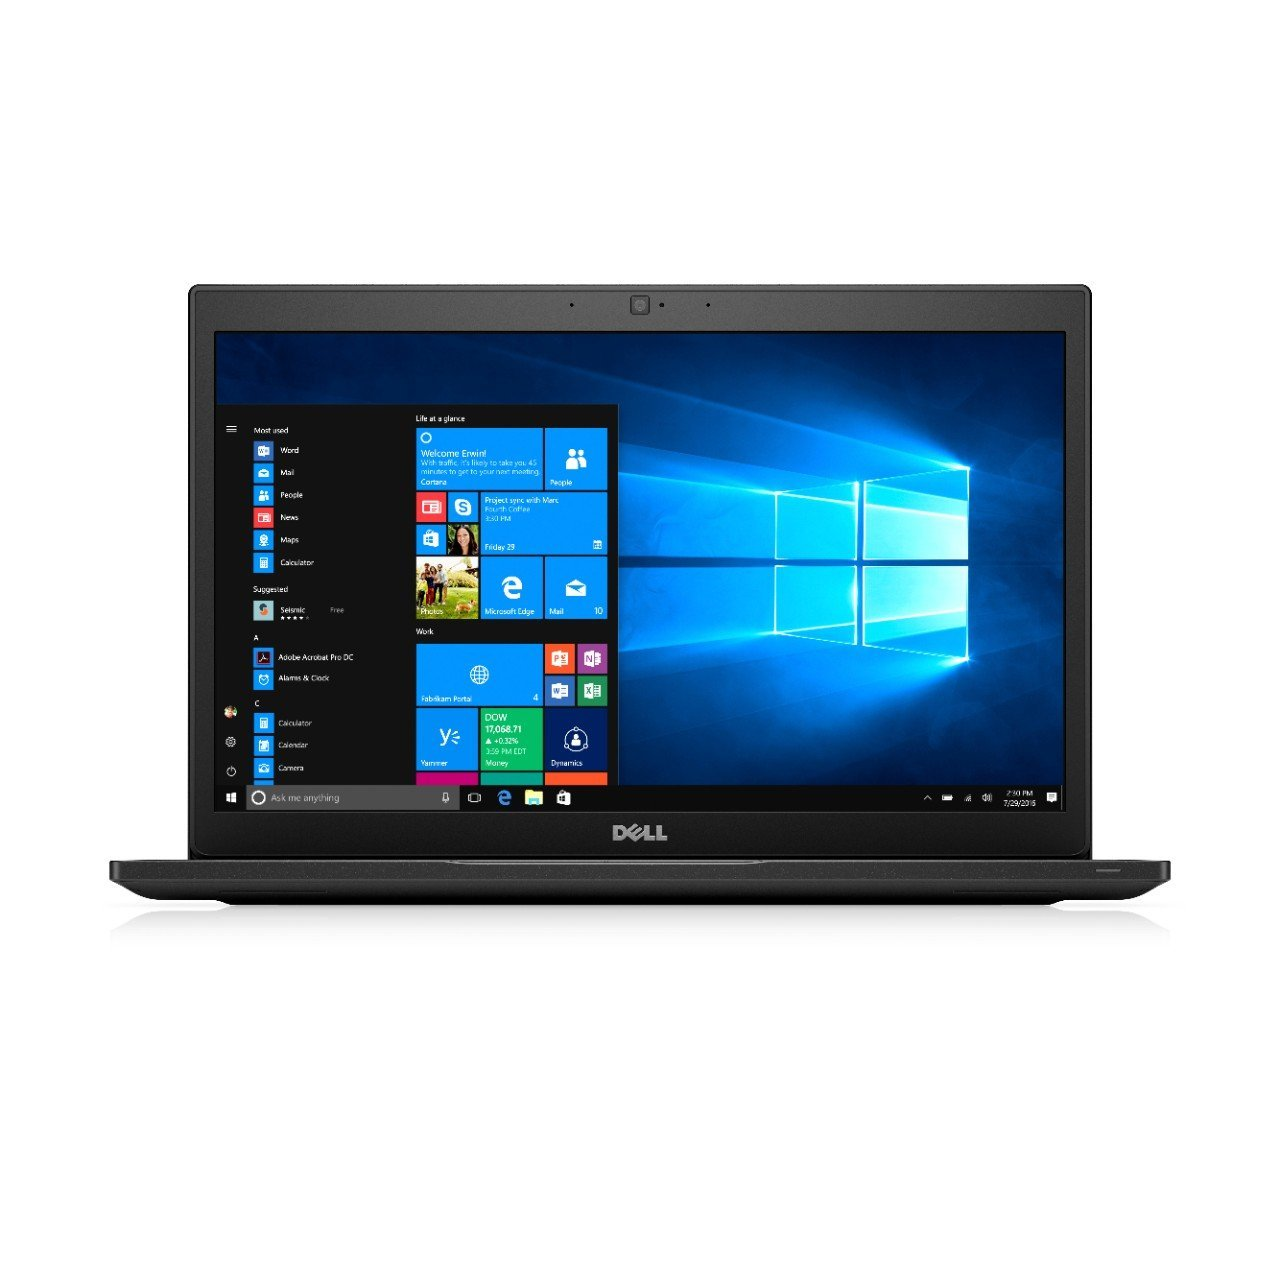 Ultrabook Dell Latitude 7480 14 Full HD Intel Core i7-7600U RAM 8GB SSD 512GB Windows 10 Pro